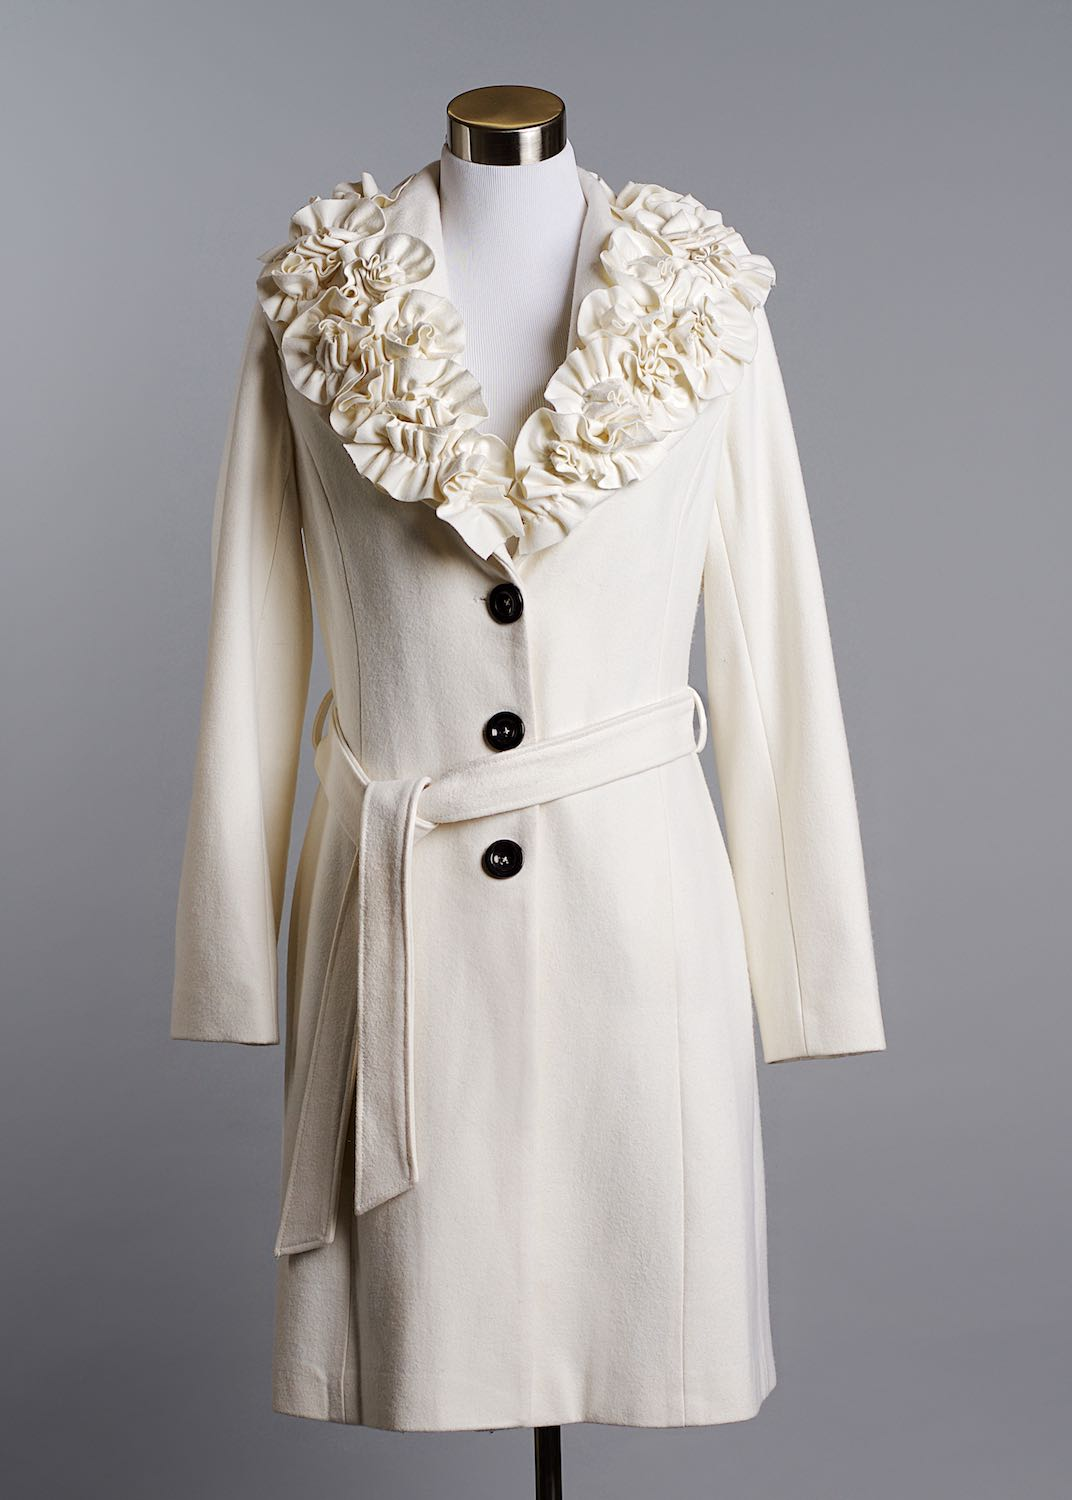 White floral collar coat by Bret Doss Commercial Product Photography Seattle